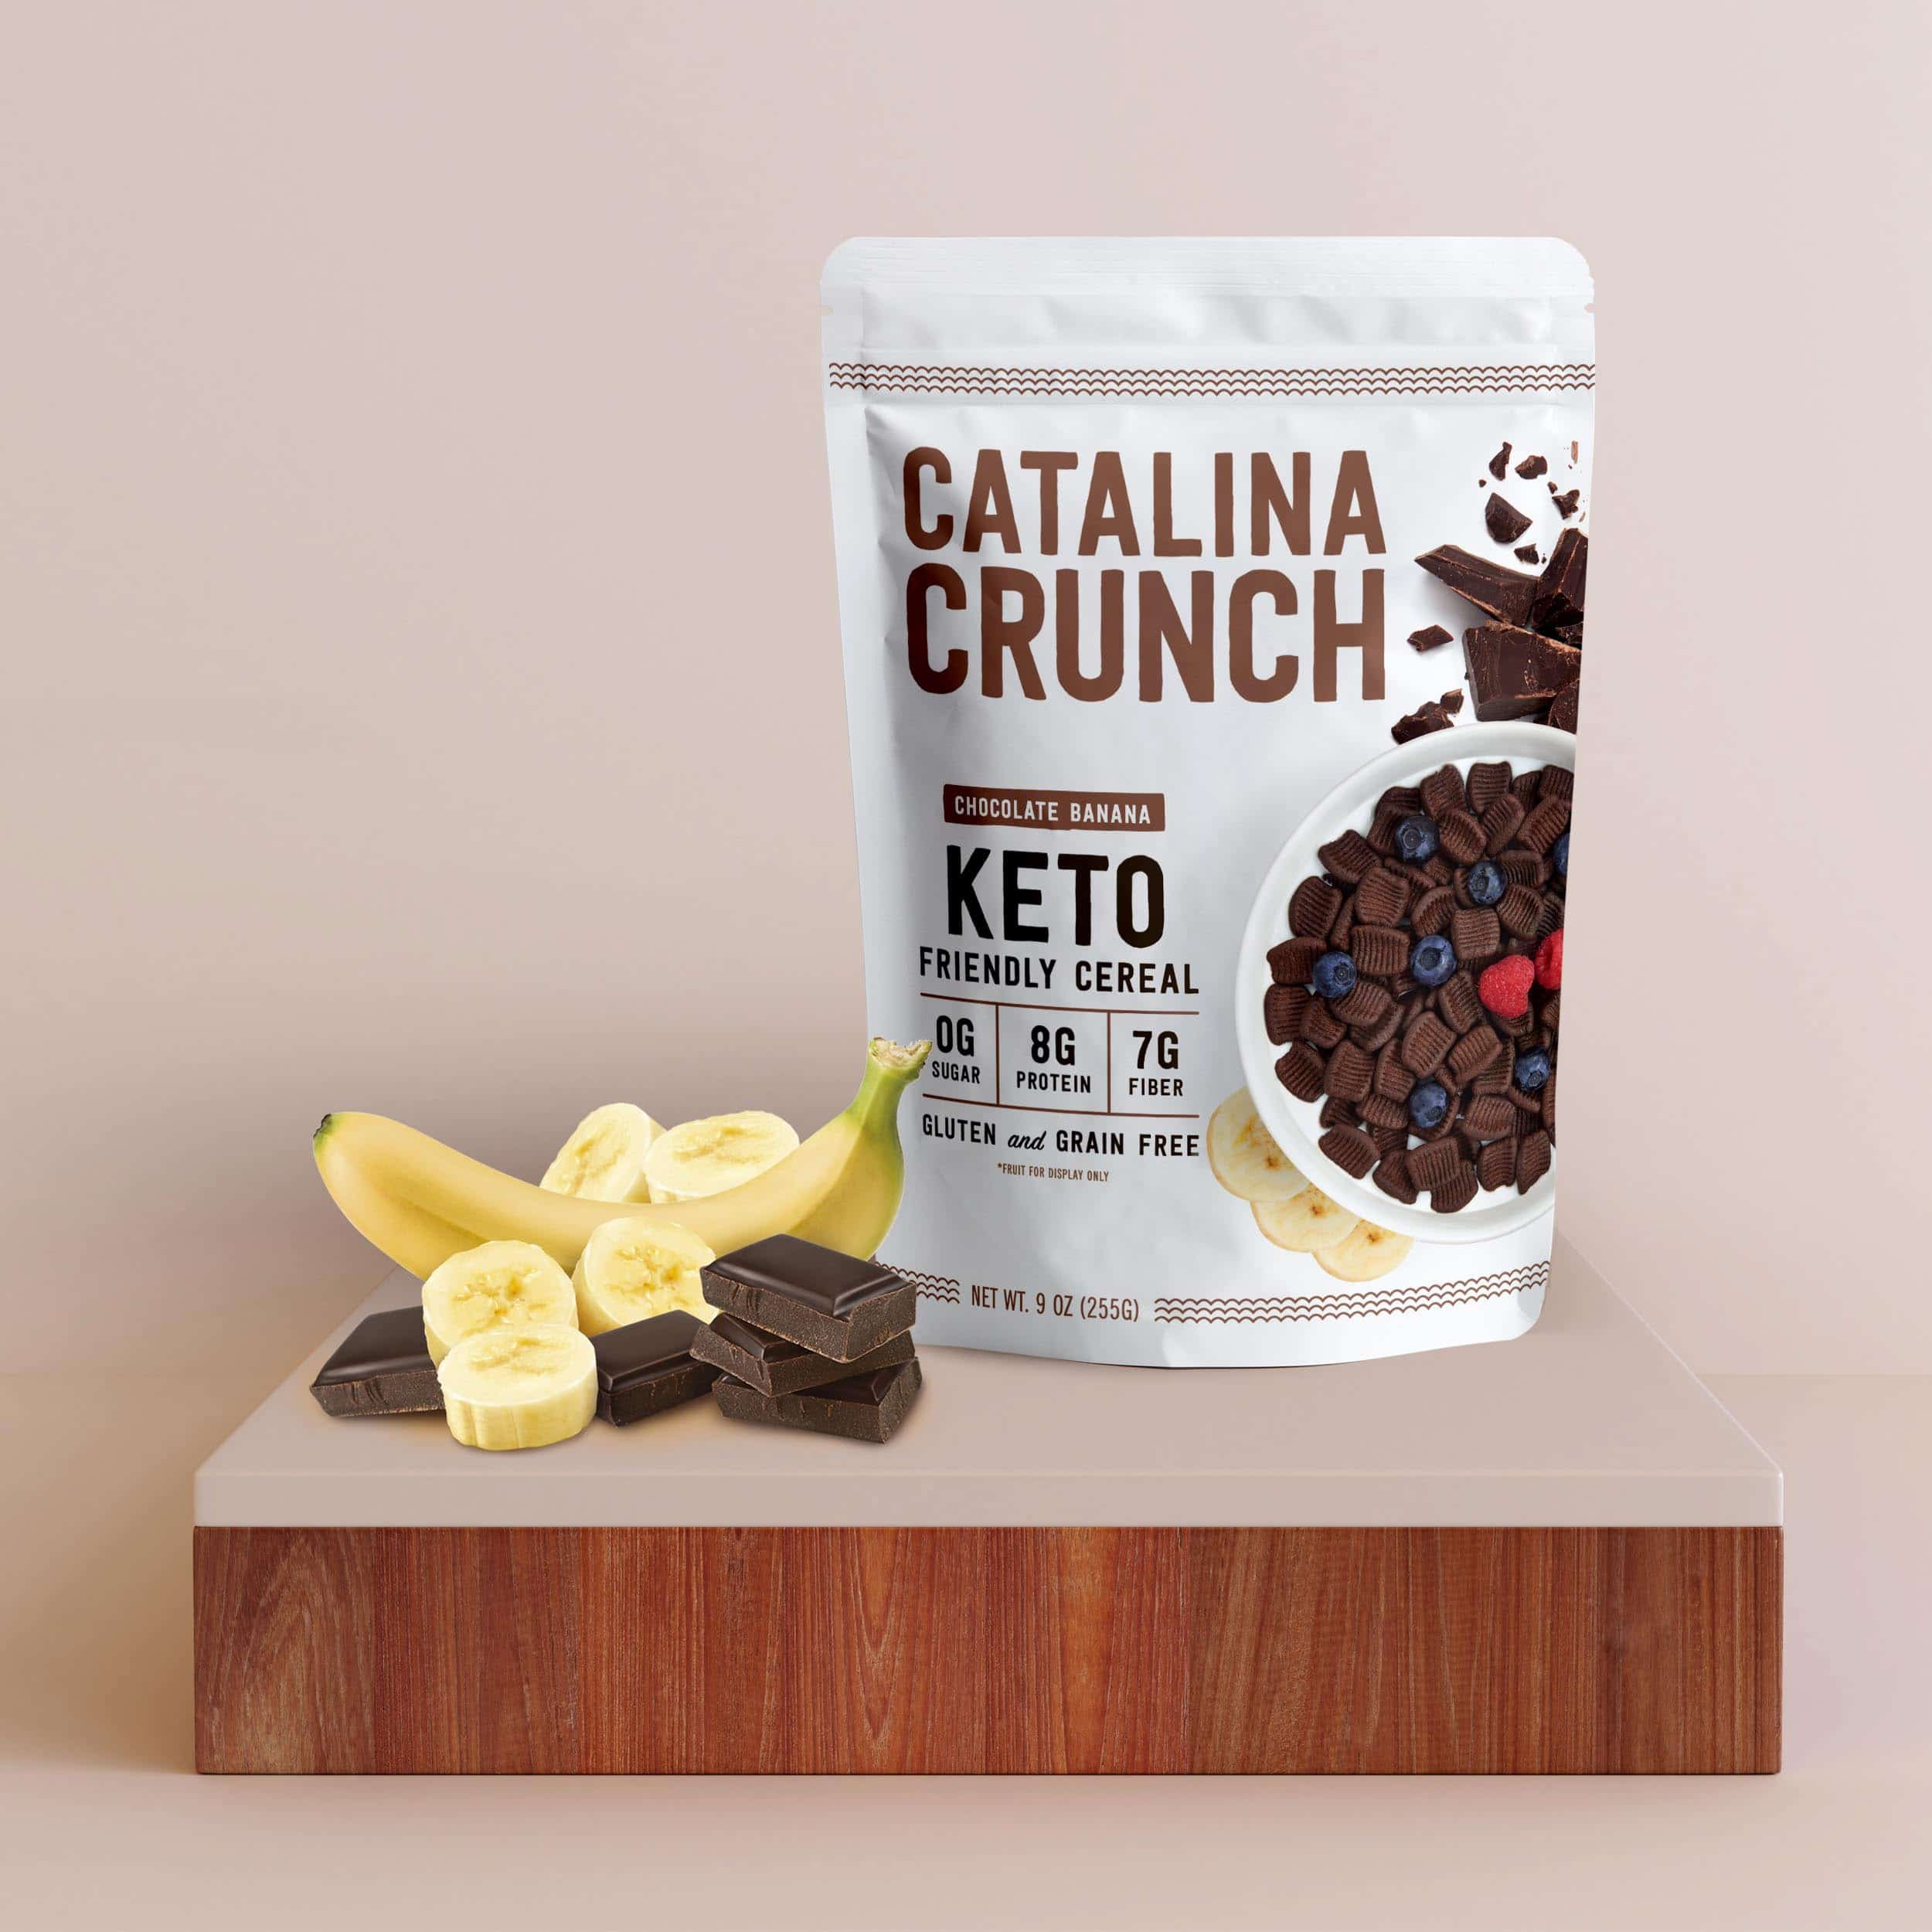 Catalina Crunch Launches Chocolate Banana Cereal